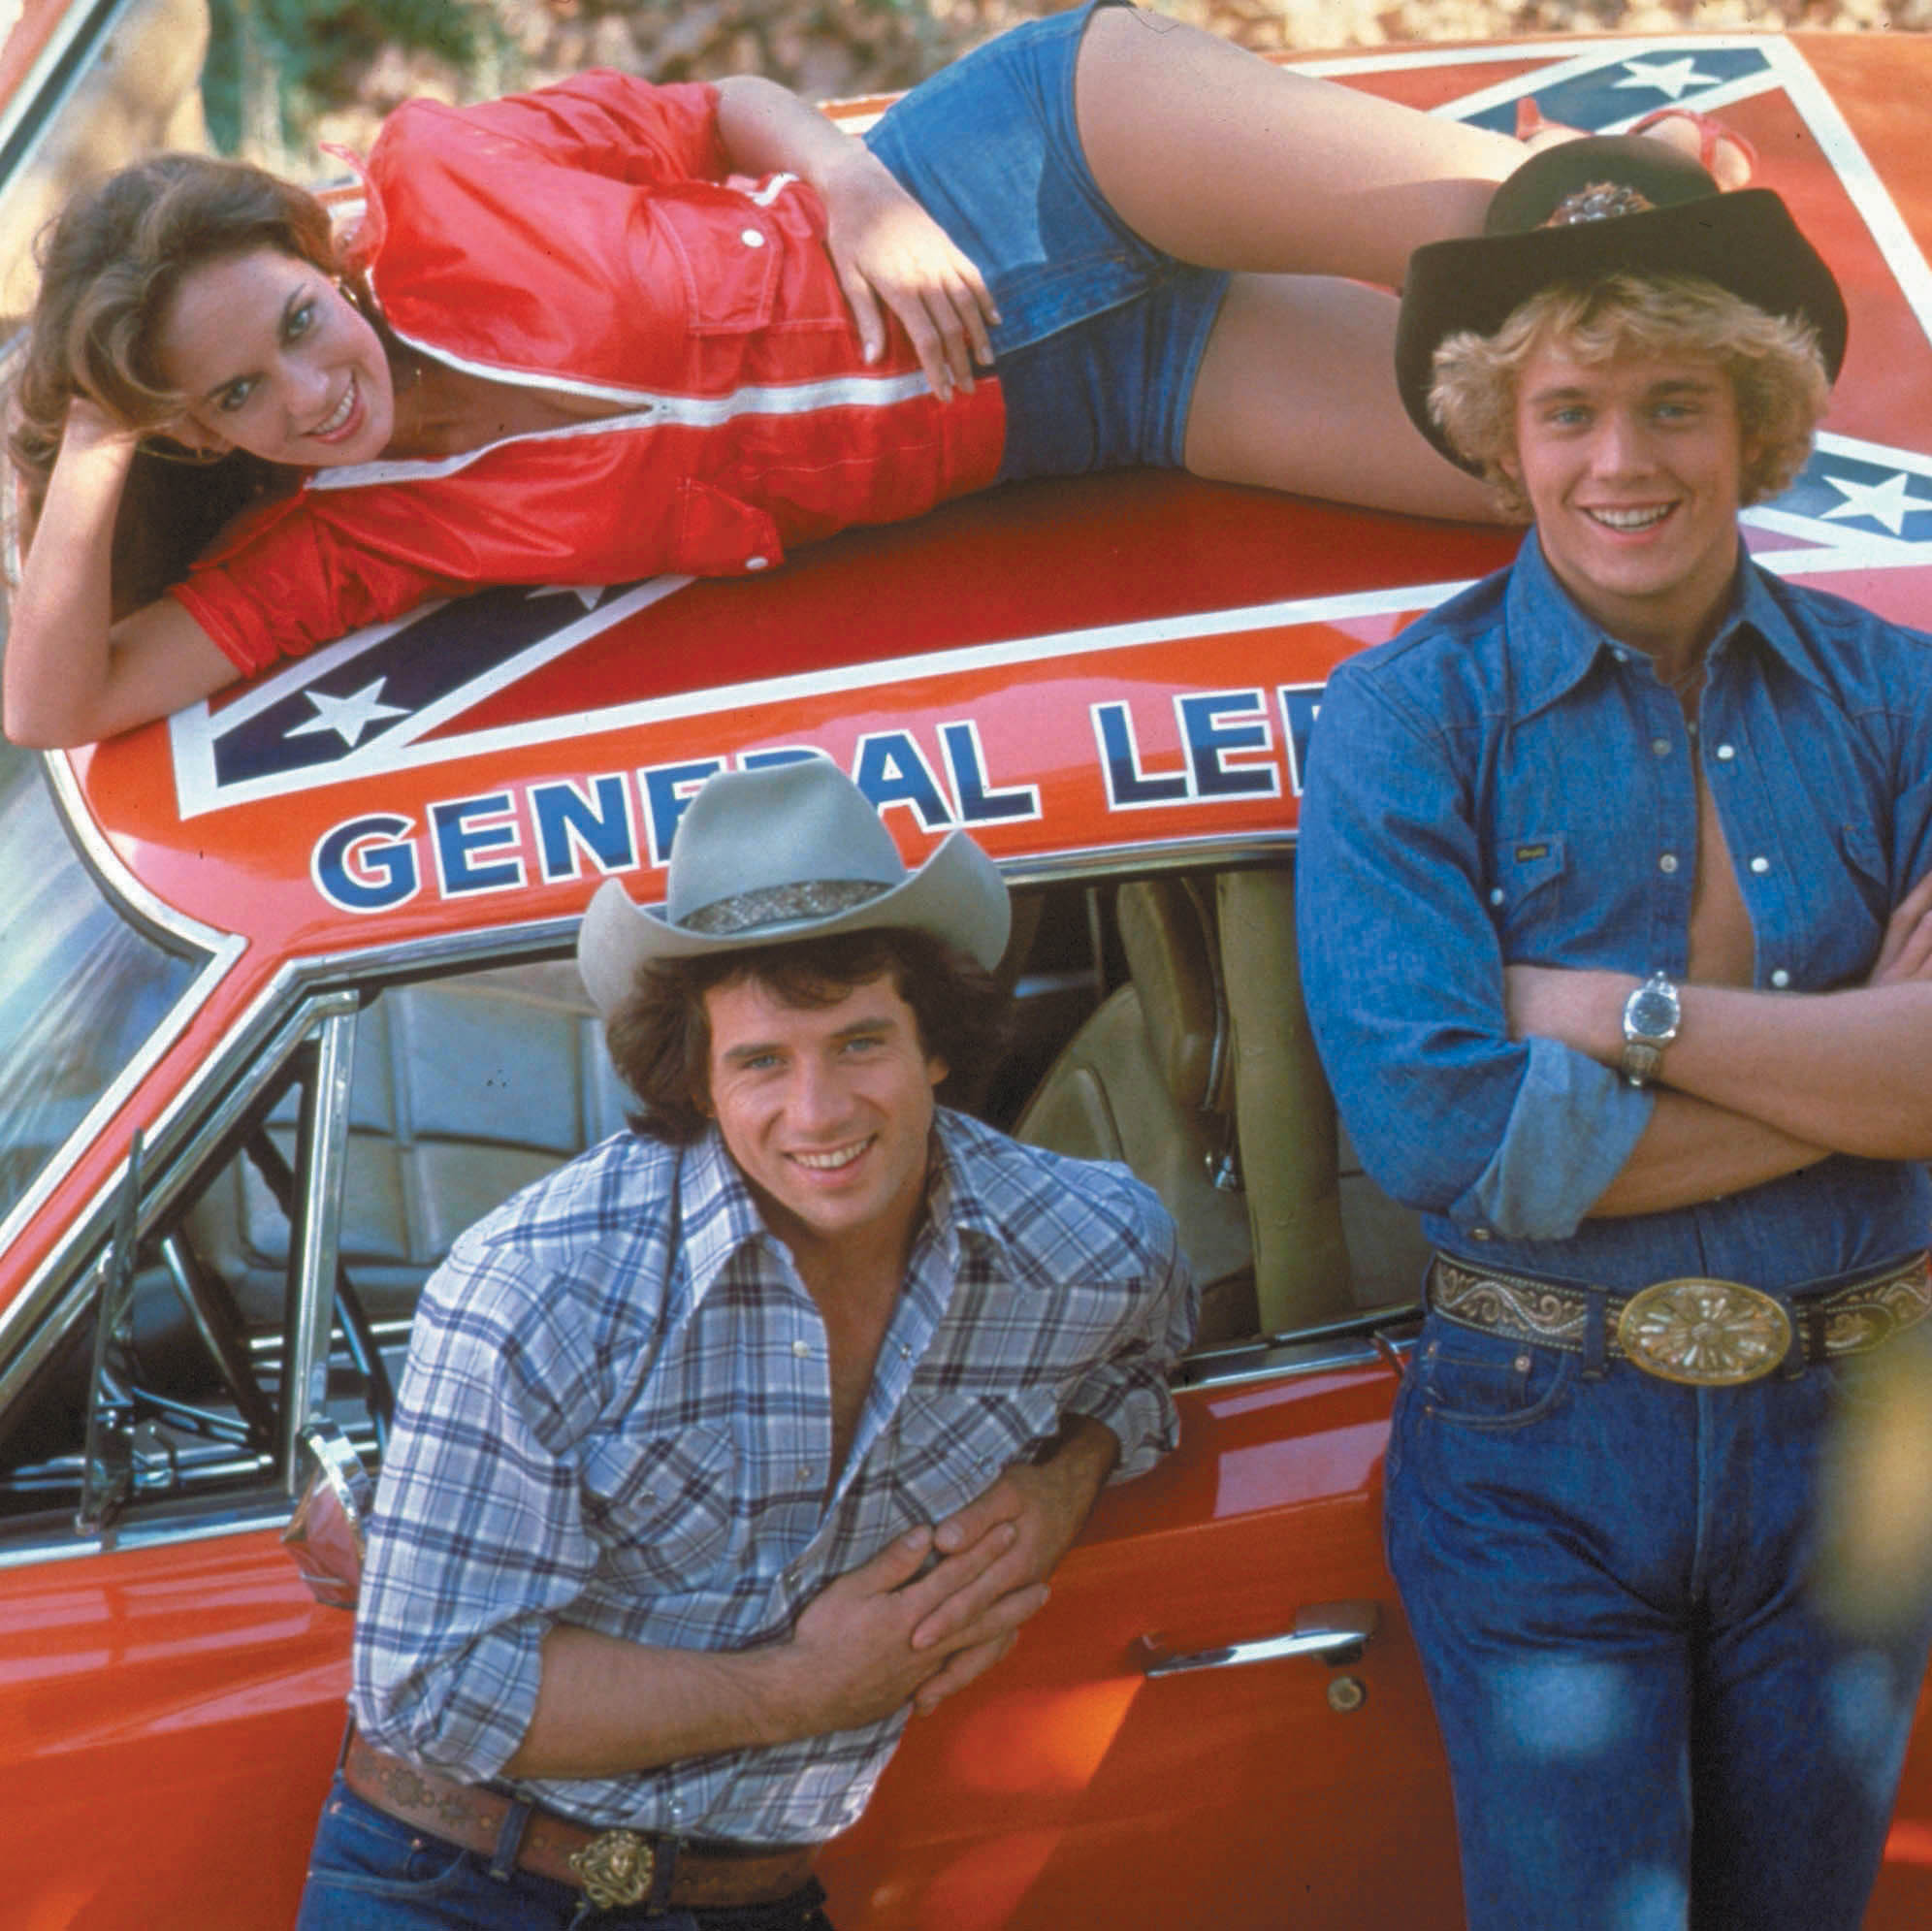 Tom Wopat (left), John Schneider and Catherine Bach played Luke, Bo and Daisy Duke -- rowdy country cousins in a Georgia town -- in the '80s TV series The Dukes of Hazzard.